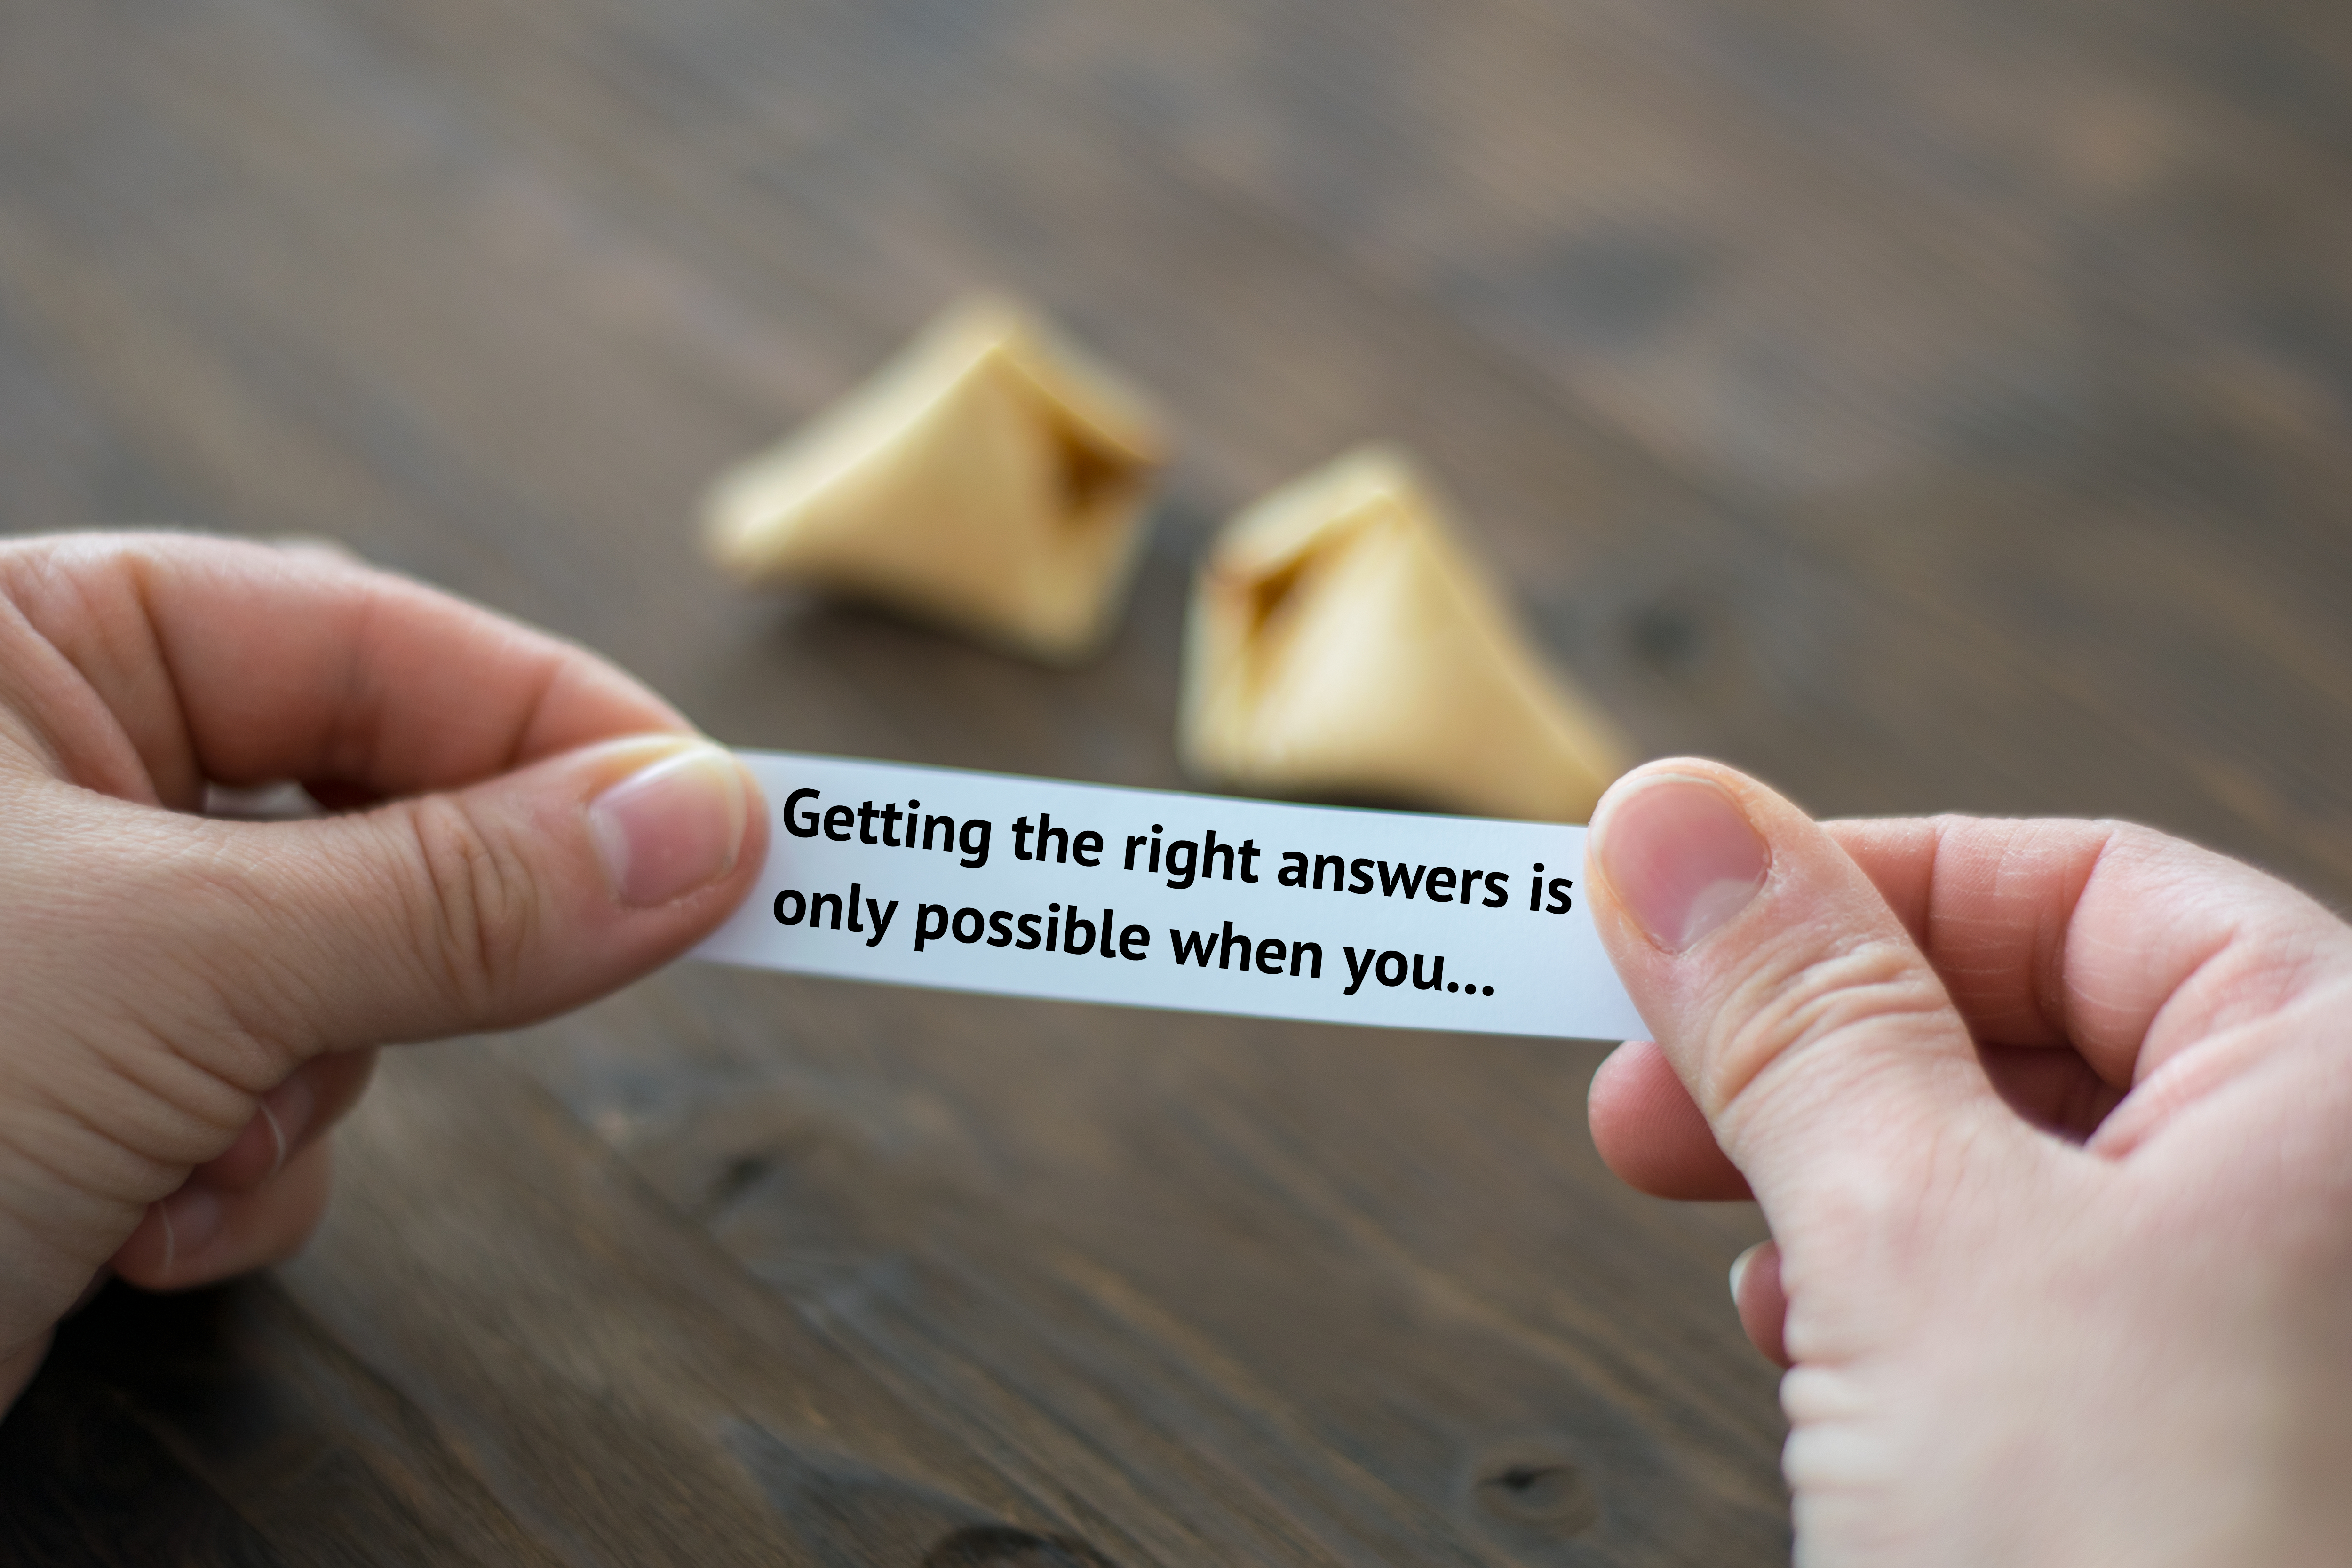 Getting the right answers is only possible when you have asked the right questions